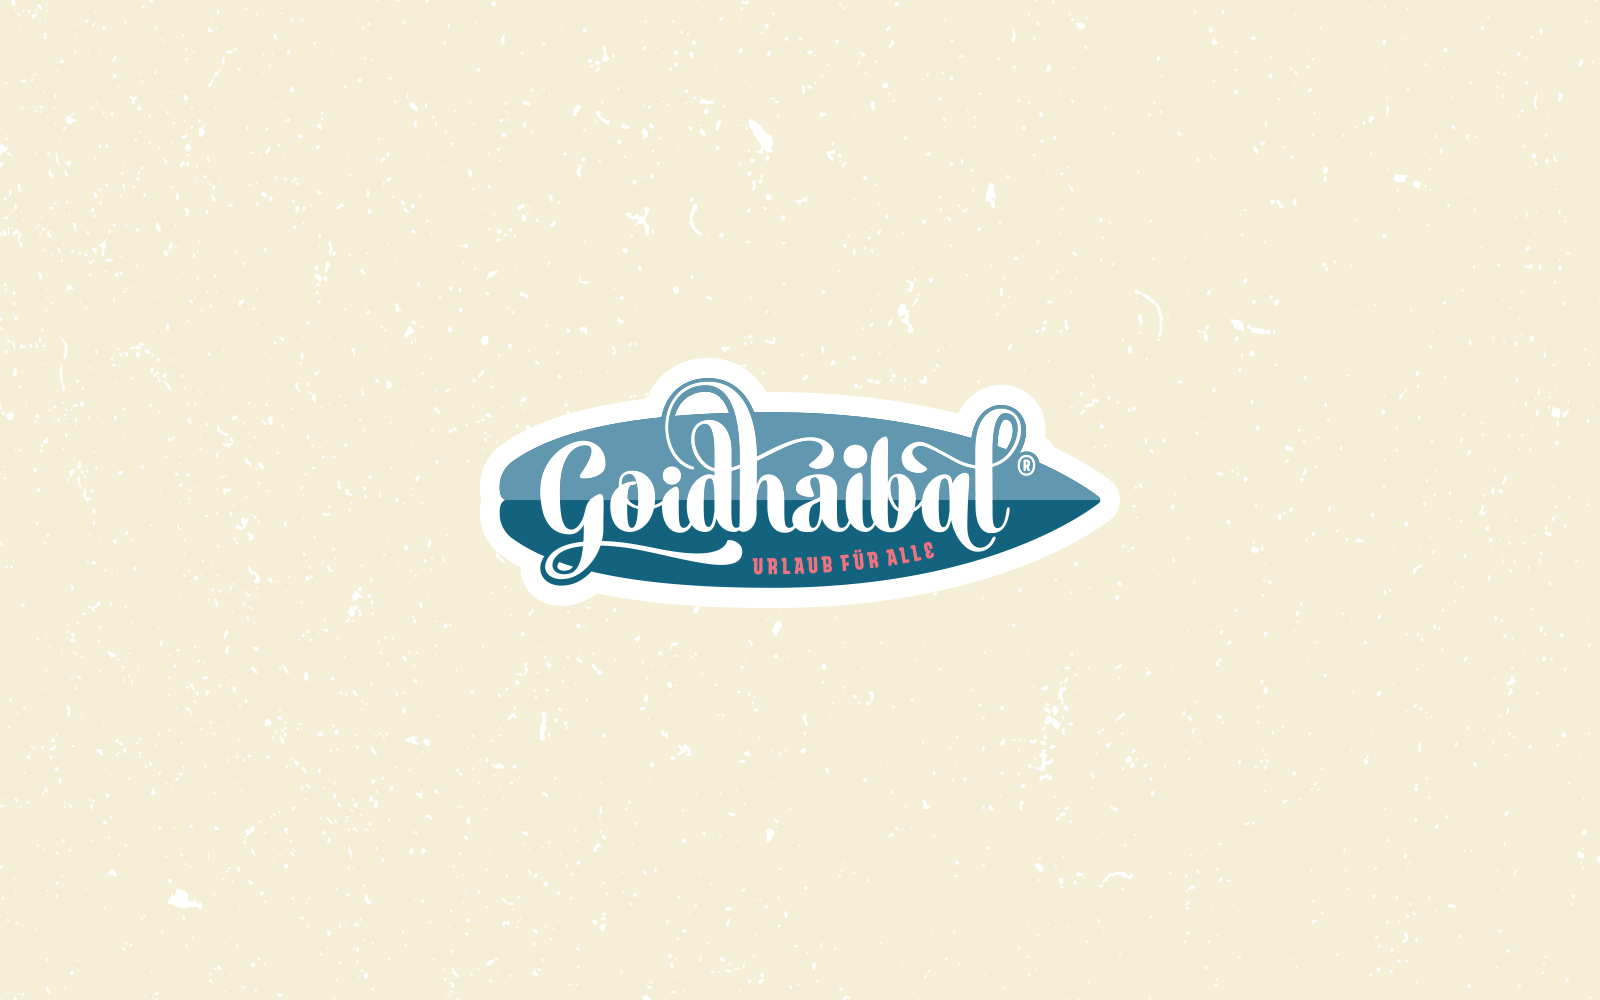 Goidhaibal® – Logo Version 2